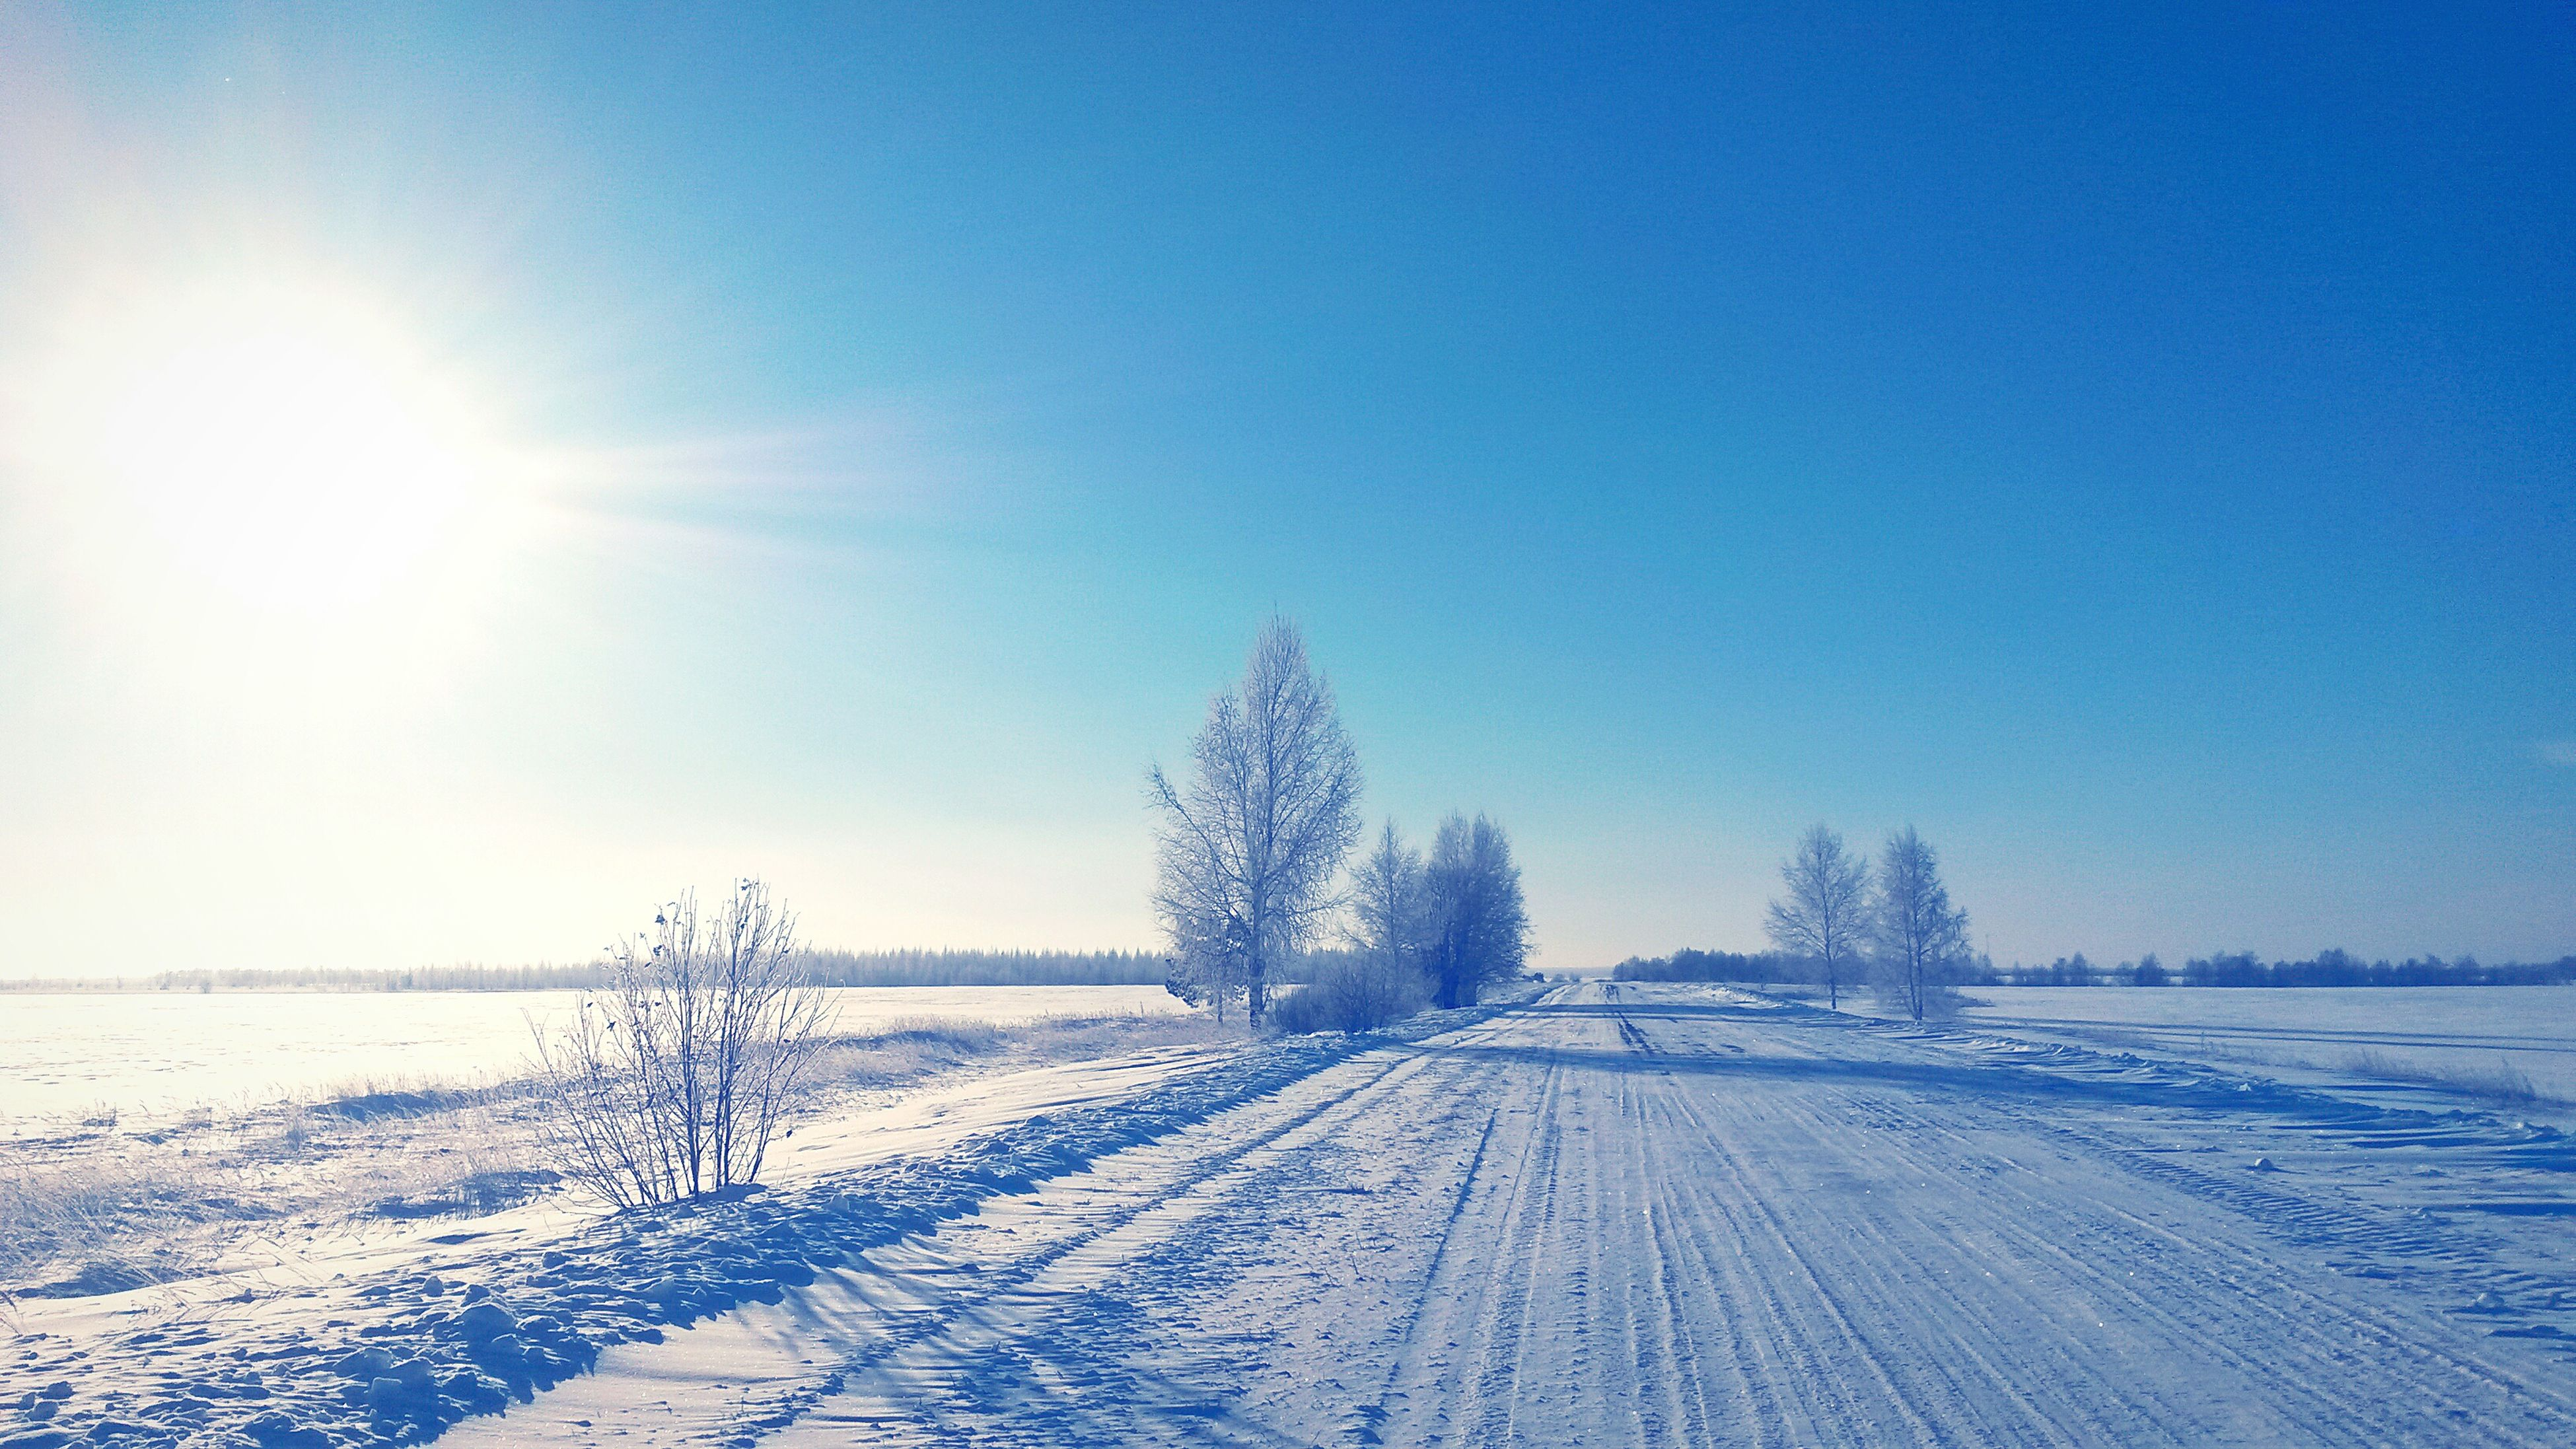 snow, winter, cold temperature, season, weather, clear sky, covering, tranquil scene, landscape, tranquility, the way forward, snow covered, frozen, nature, field, beauty in nature, blue, white color, sun, scenics